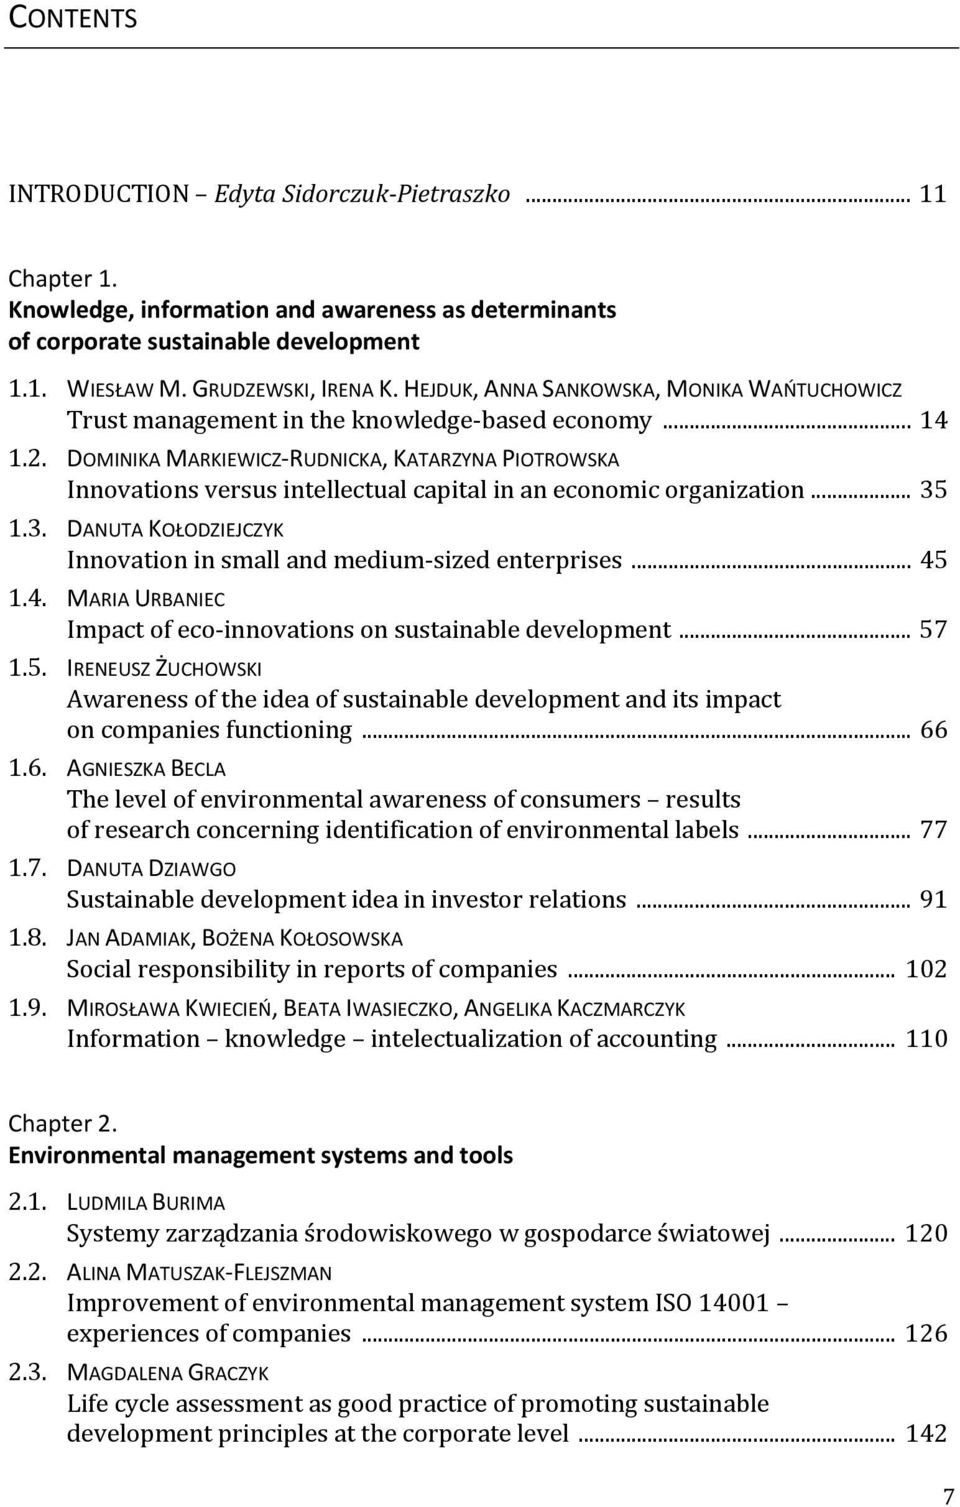 DOMINIKA MARKIEWICZ RUDNICKA, KATARZYNA PIOTROWSKA Innovations versus intellectual capital in an economic organization... 35 1.3. DANUTA KOŁODZIEJCZYK Innovation in small and medium-sized enterprises.